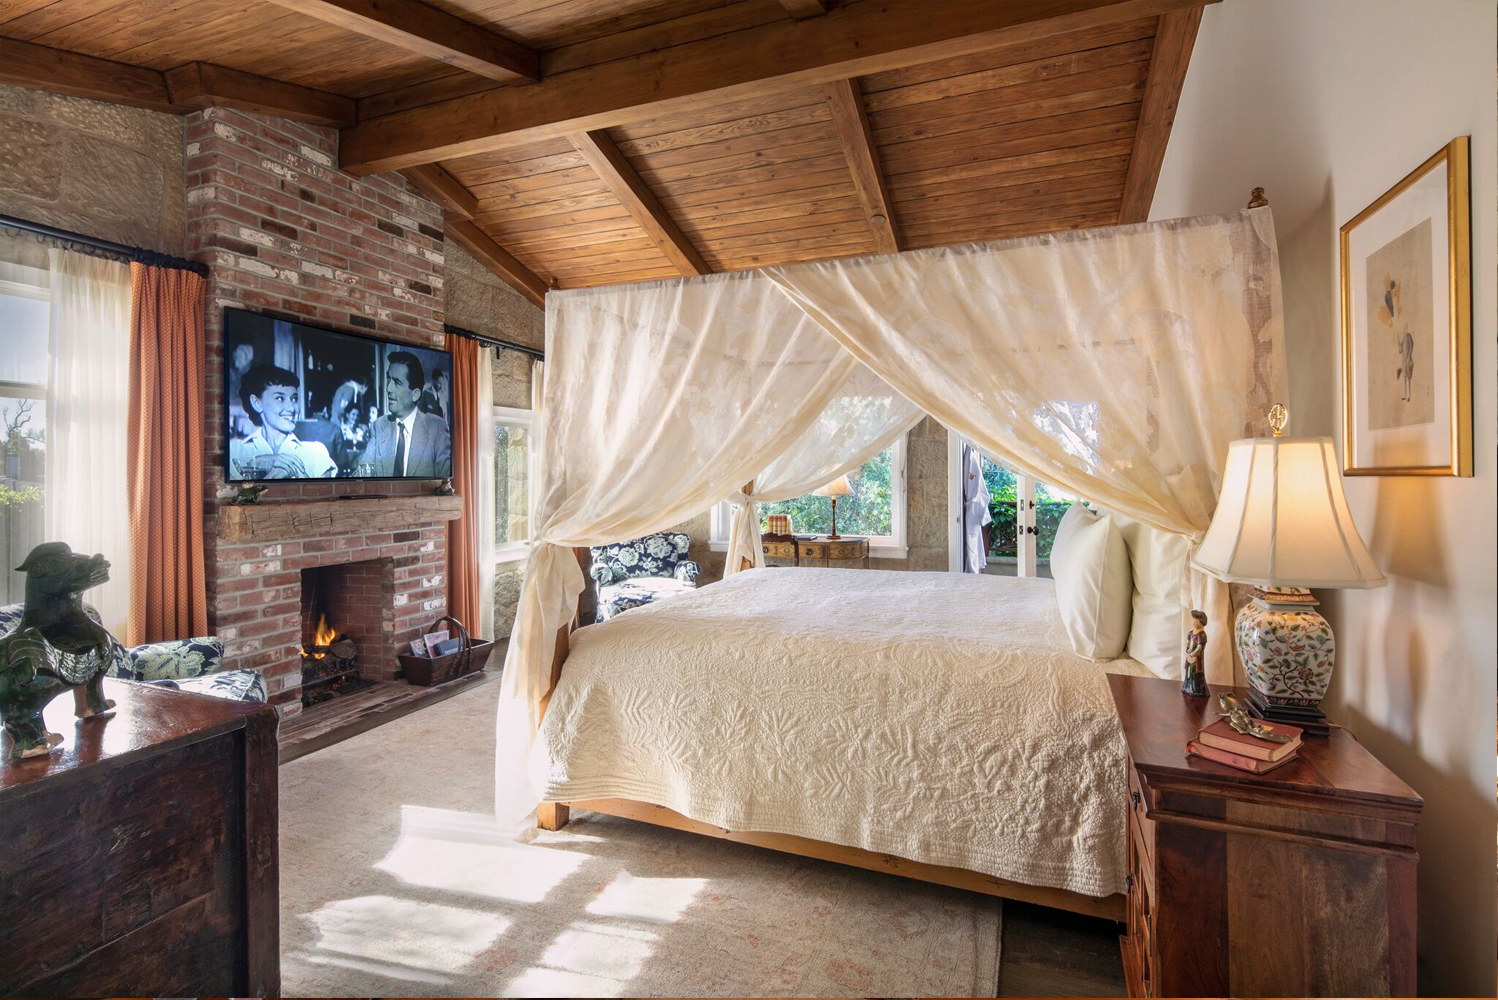 Cottages include a private outdoor patio with rain shower and sunken hot tub, and several include private plunge pools.